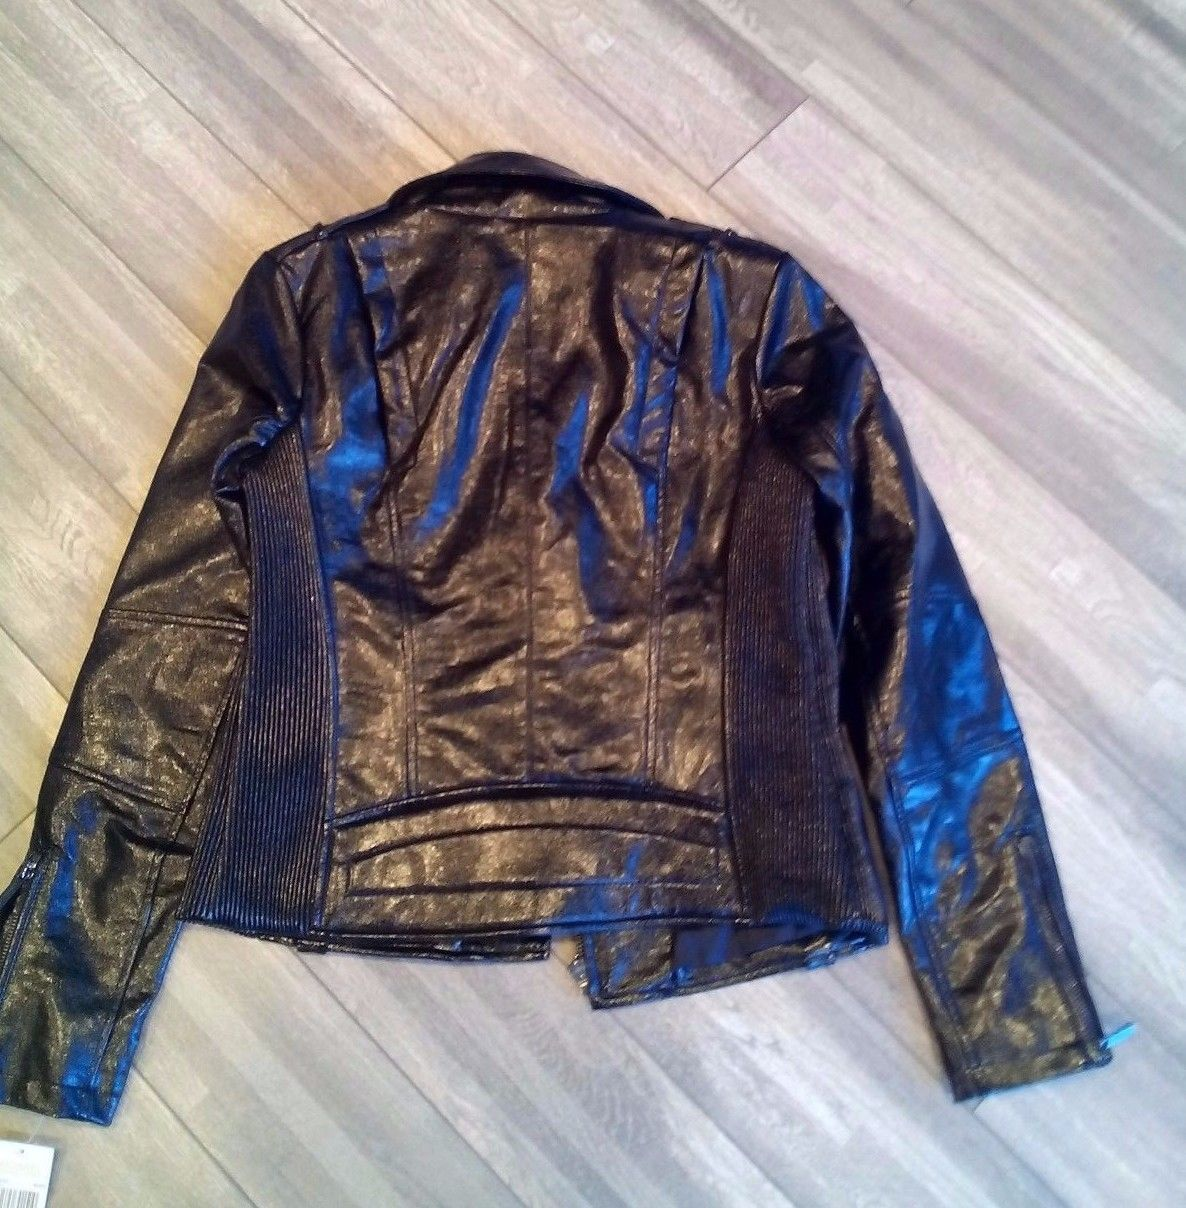 NEW ! NWT MICHAEL KORS Faux Leather Moto Jacket in Patent Glossy Black Size M